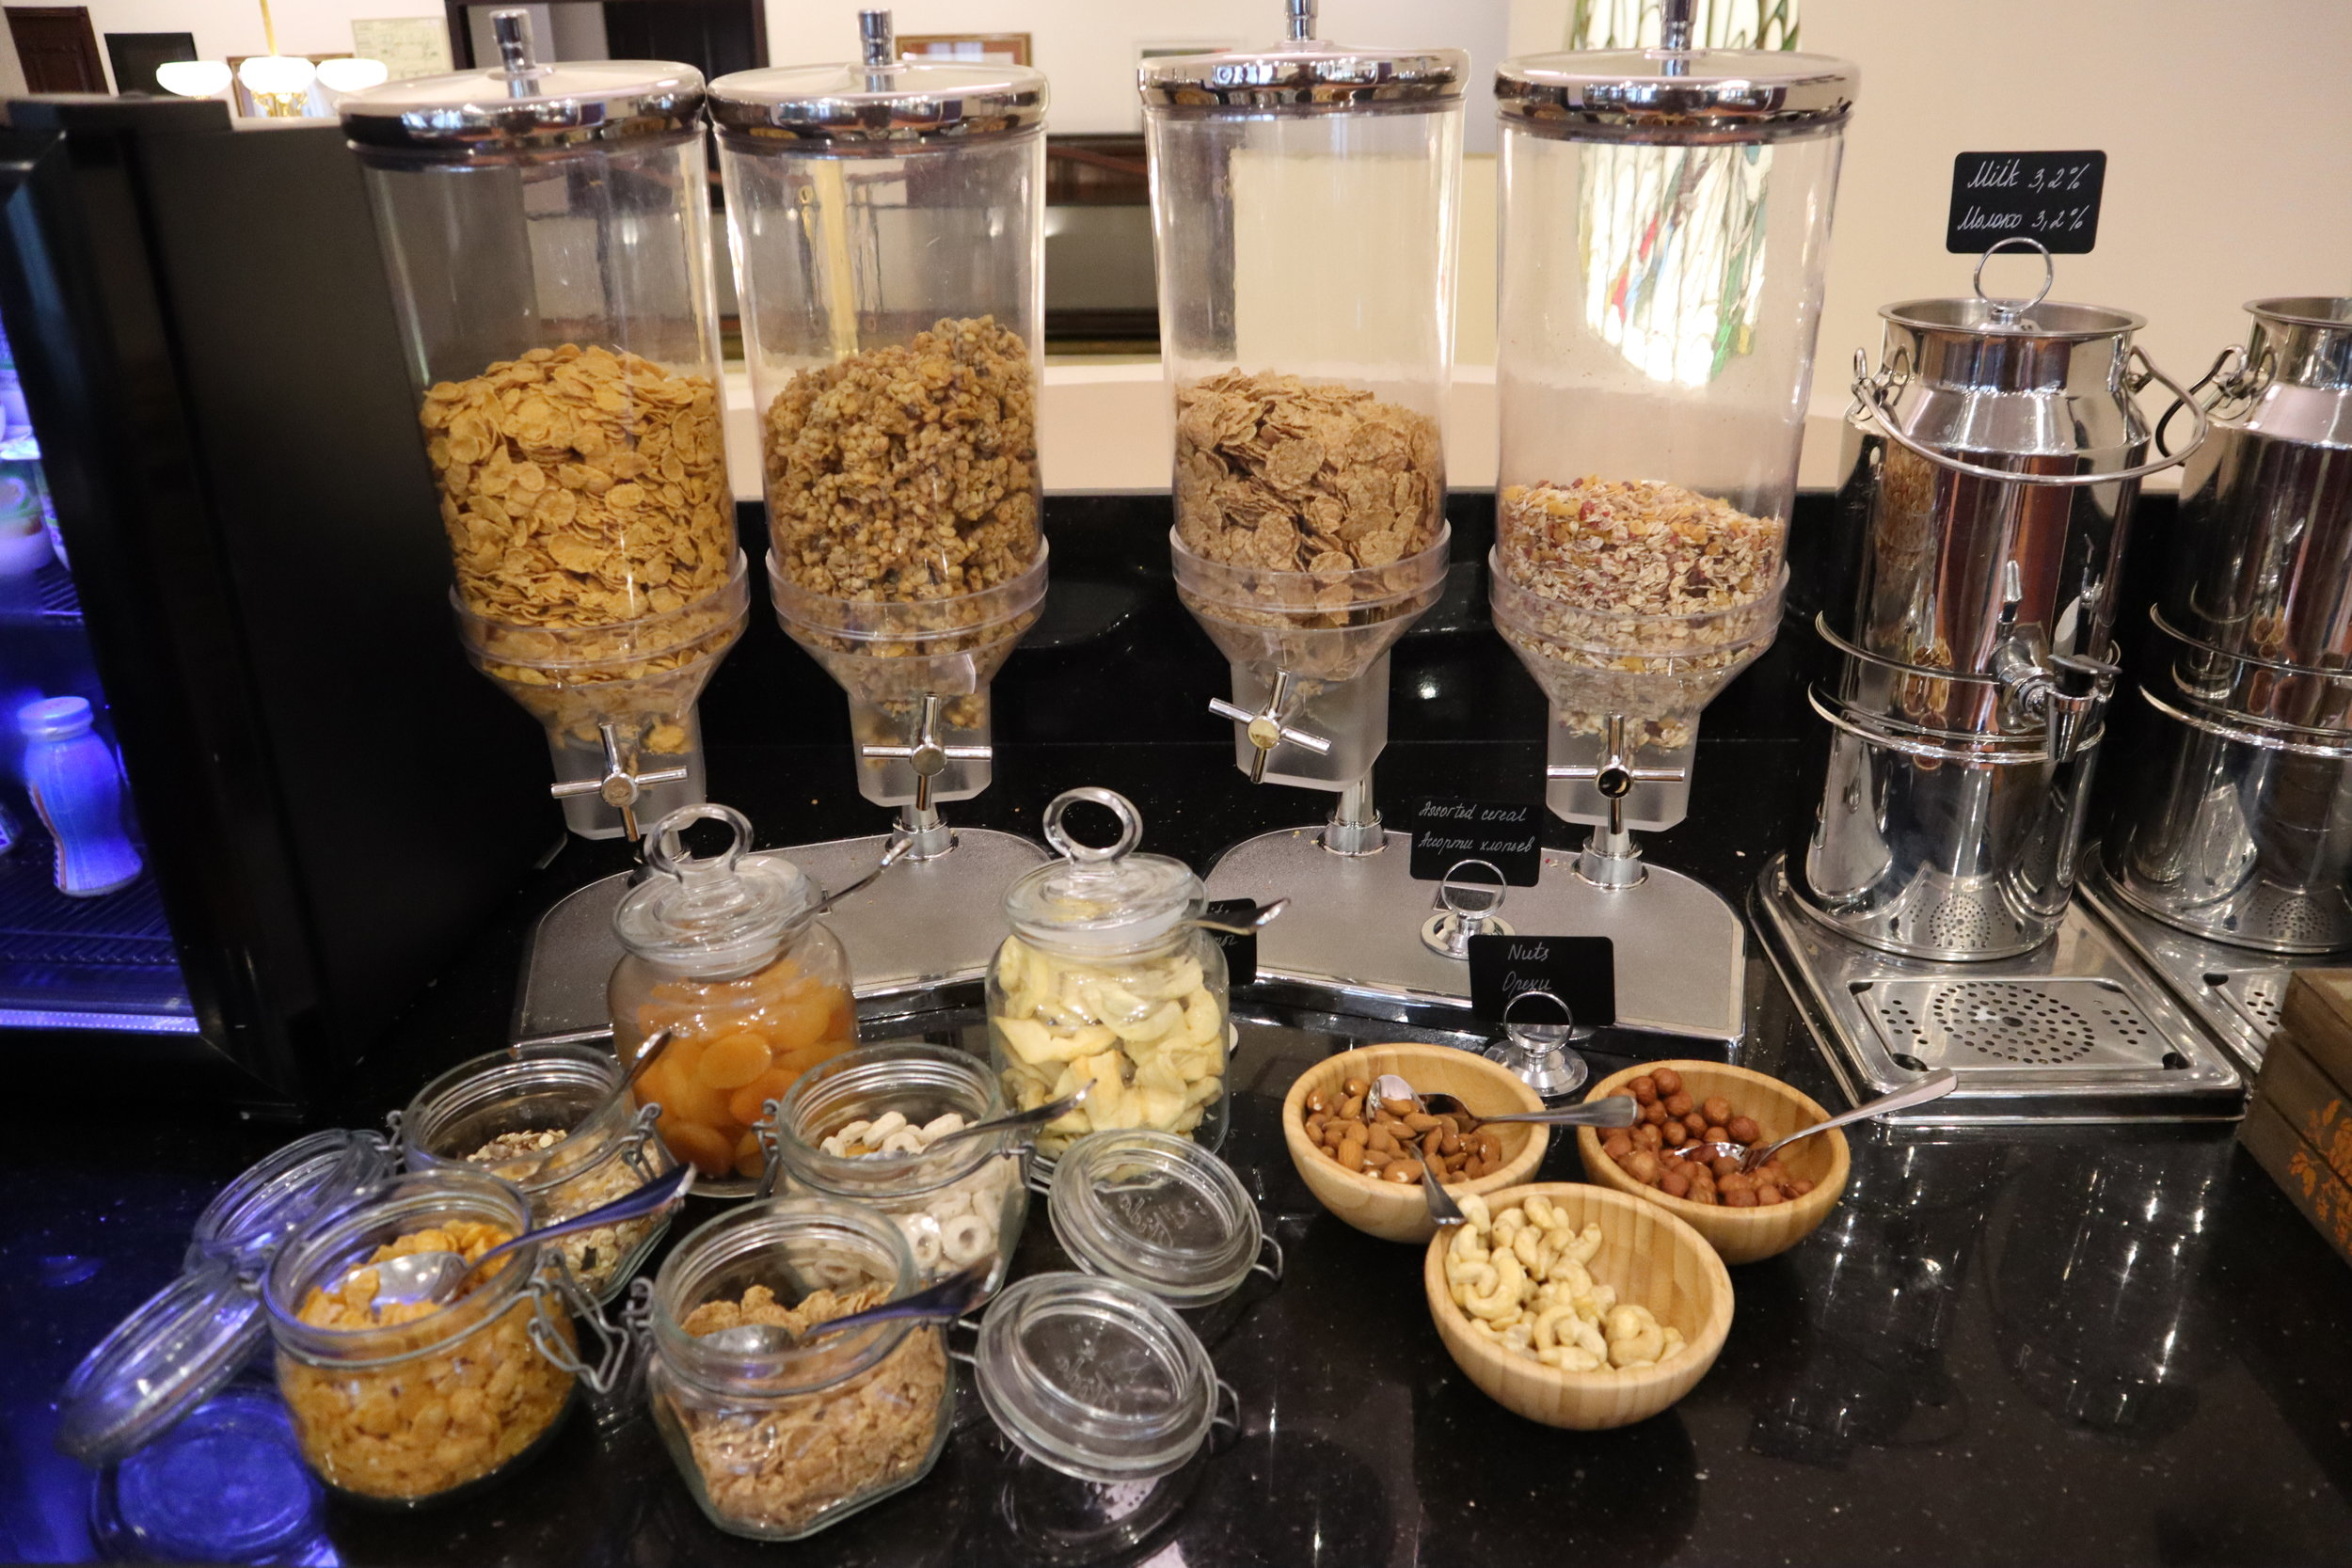 Marriott Moscow Tverskaya – Breakfast cereals